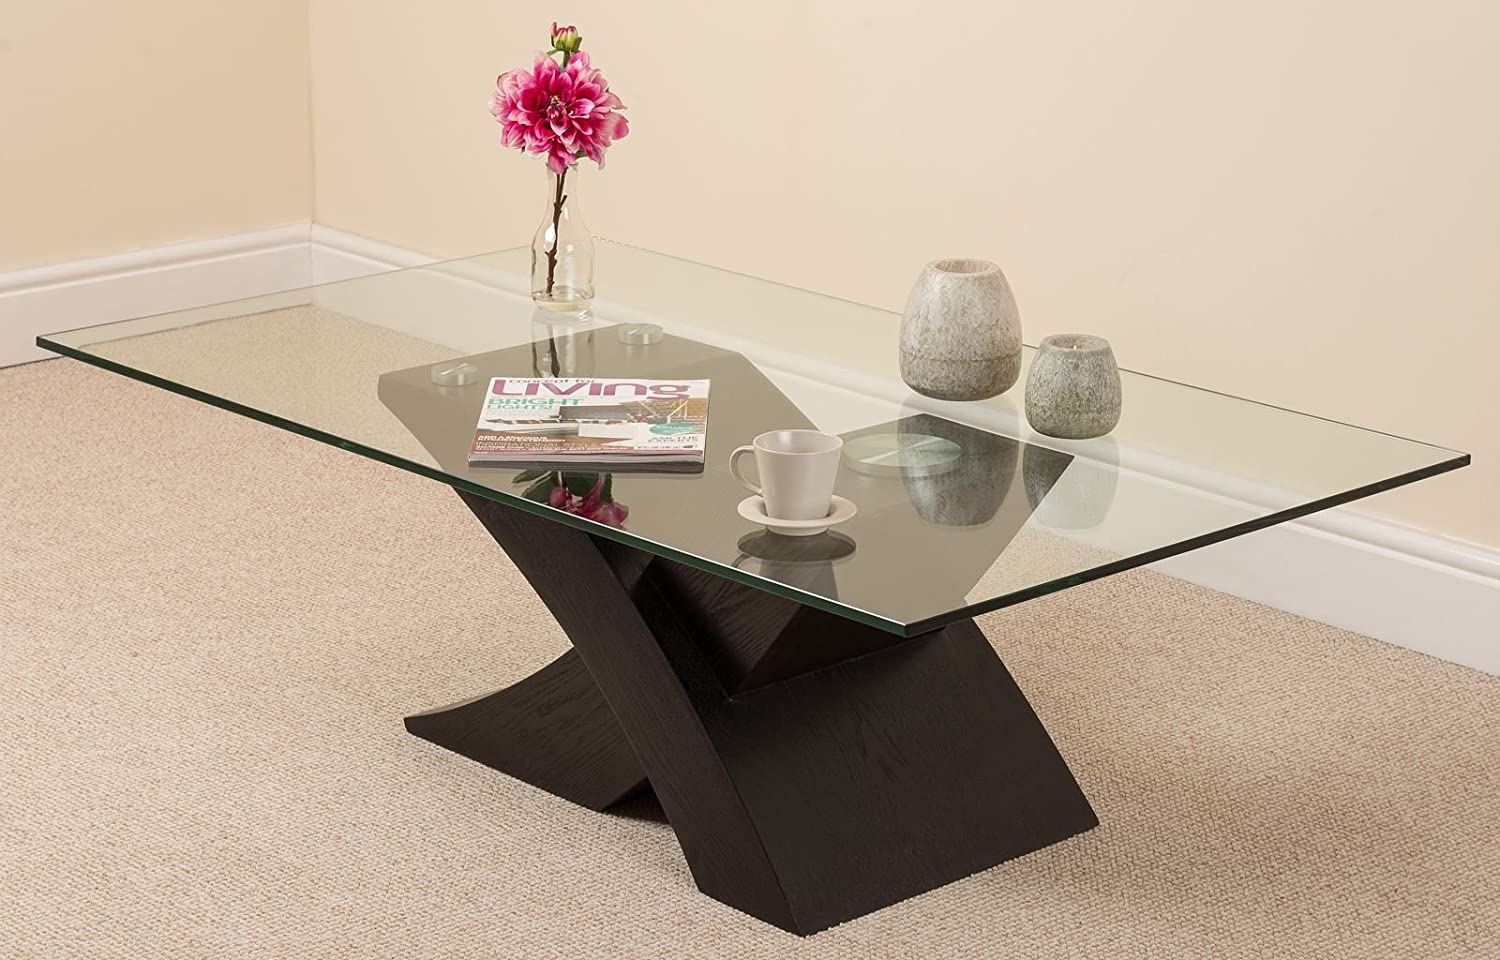 milano x glass u0026 wood coffee table black 135 w x 80 d x 45 h cm